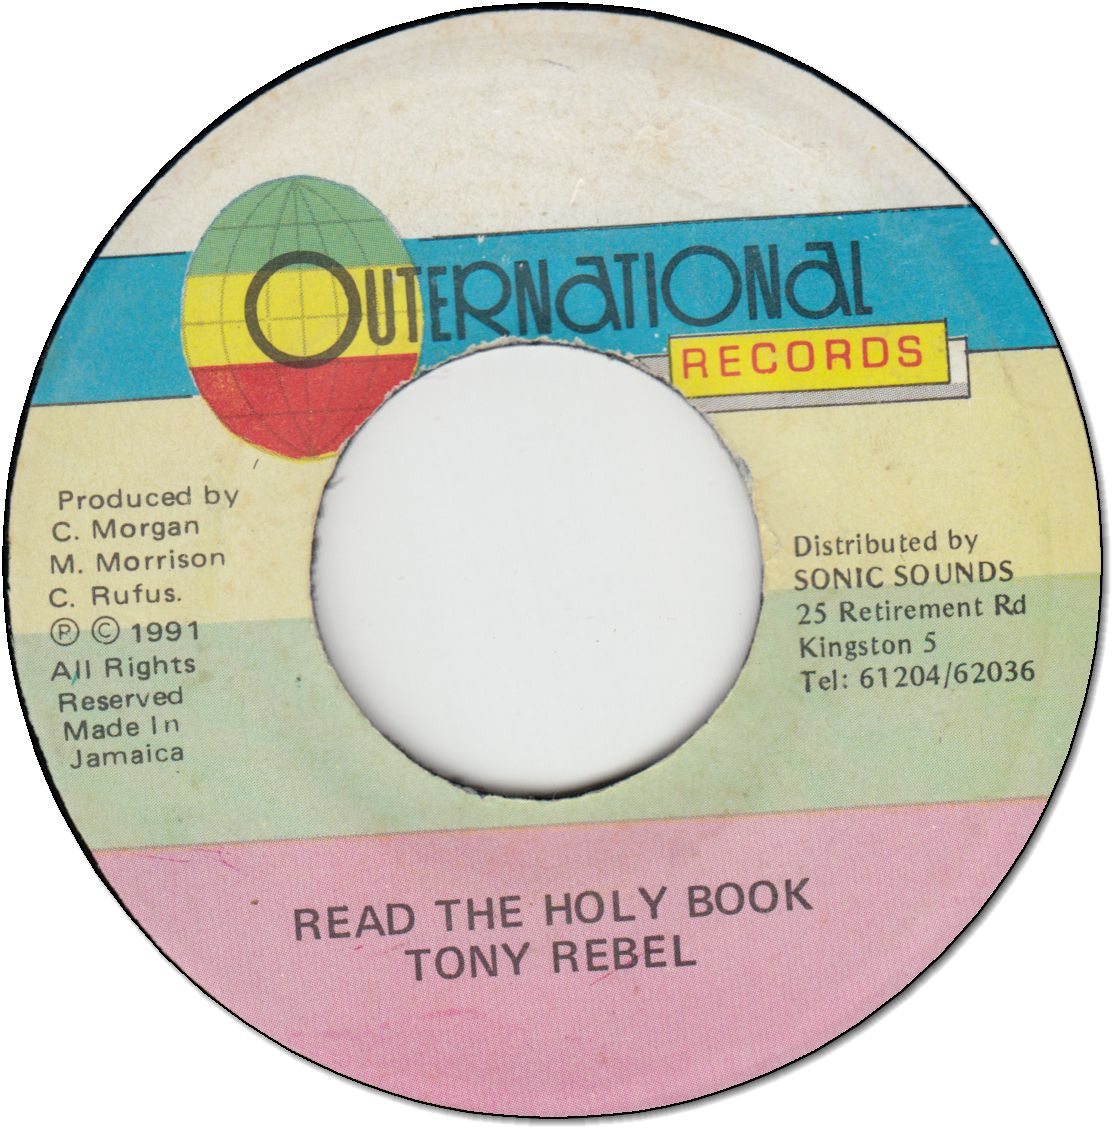 READ THE HOLLY BOOK (VG to VG+)